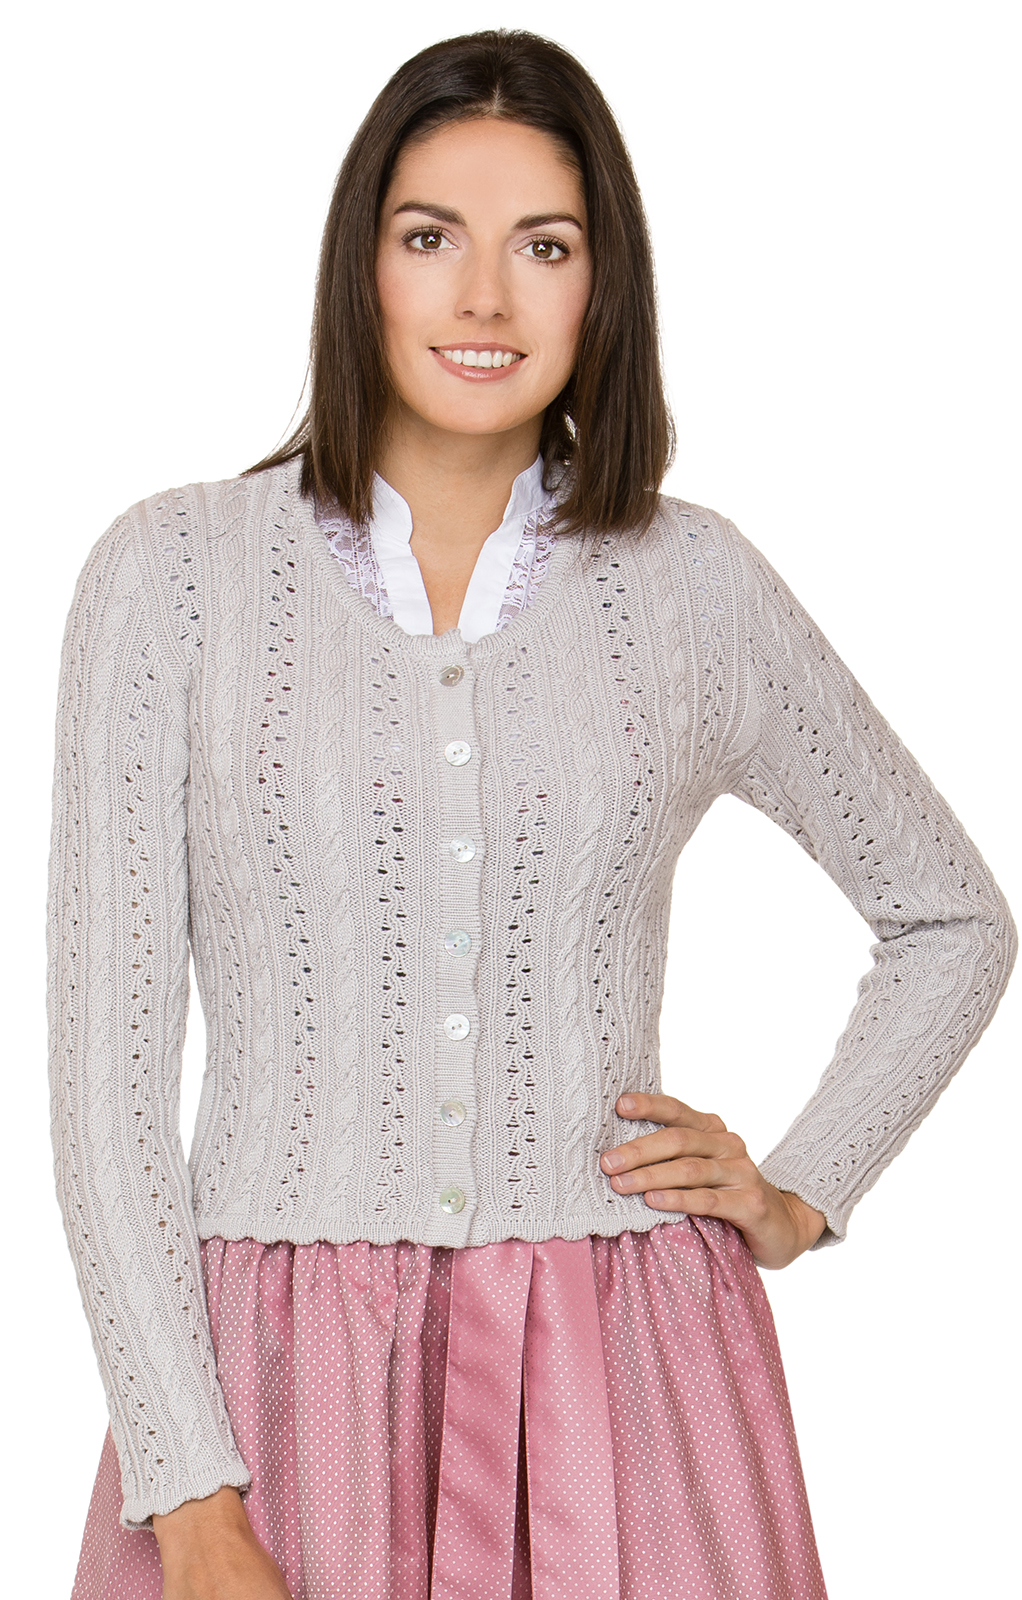 Costume cardigan LIZ2 brown von Stockerpoint